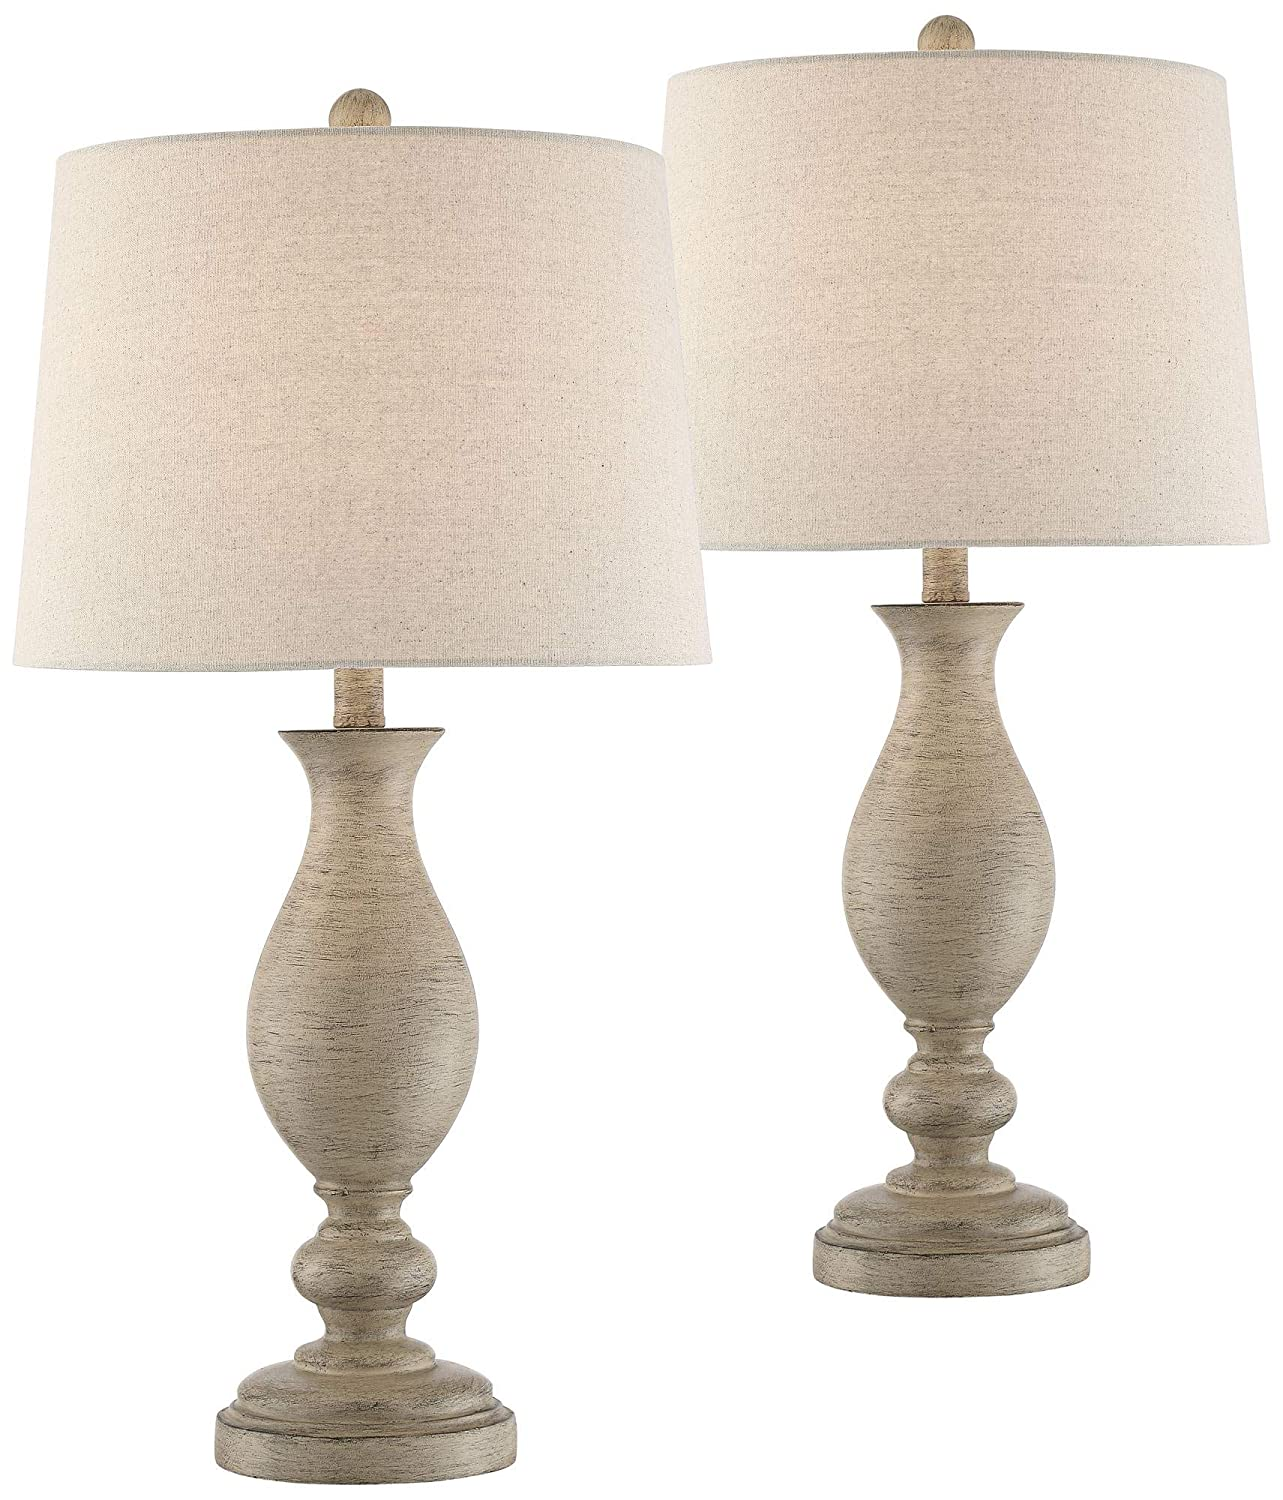 Serena country cottage table lamps set of 2 cream wood oatmeal drum shade for living room family bedroom bedside office regency hill amazon com